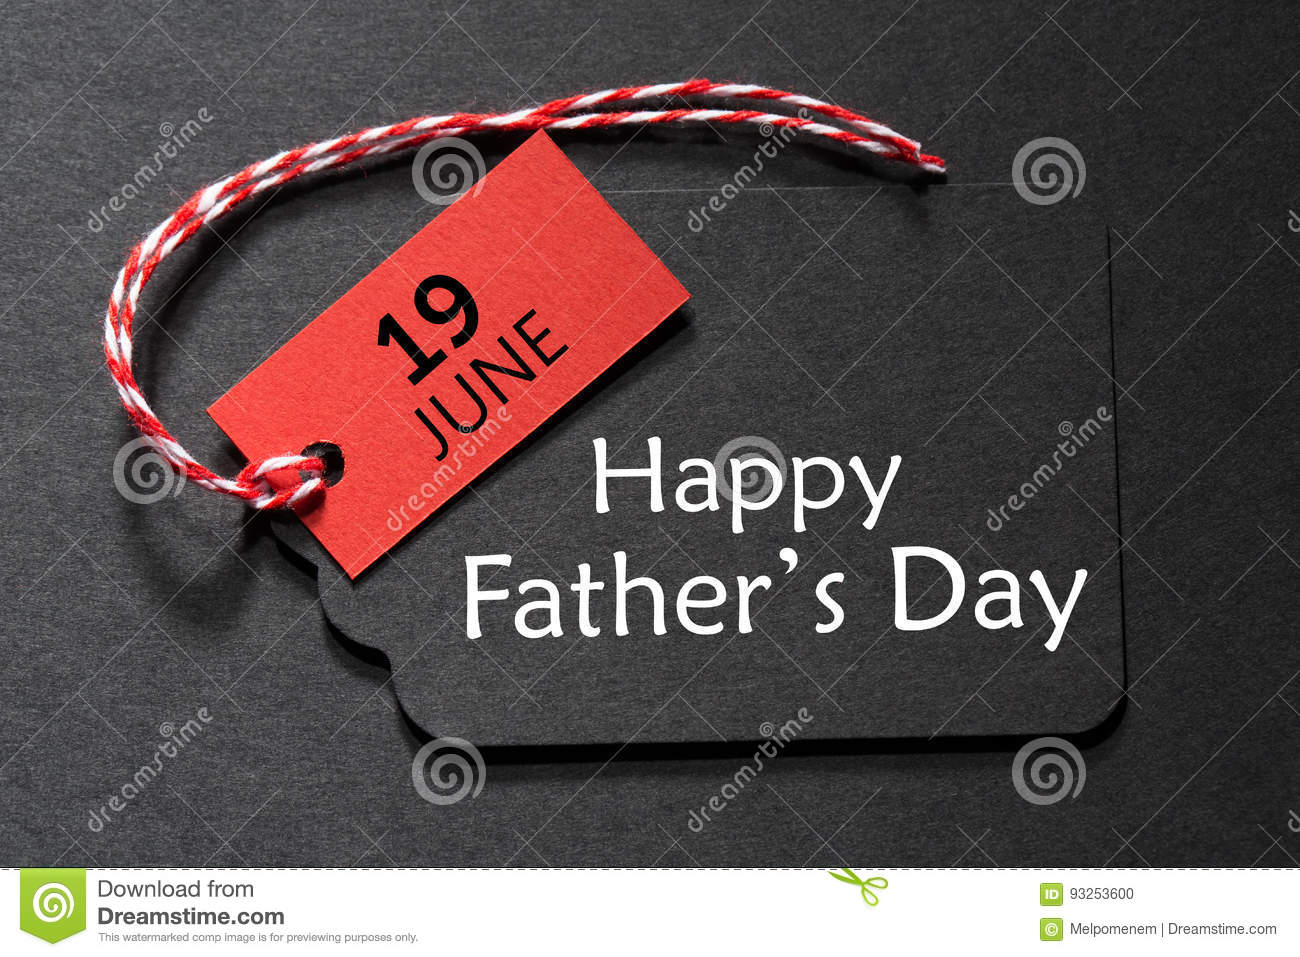 Happy Father`s Day text on a black tag